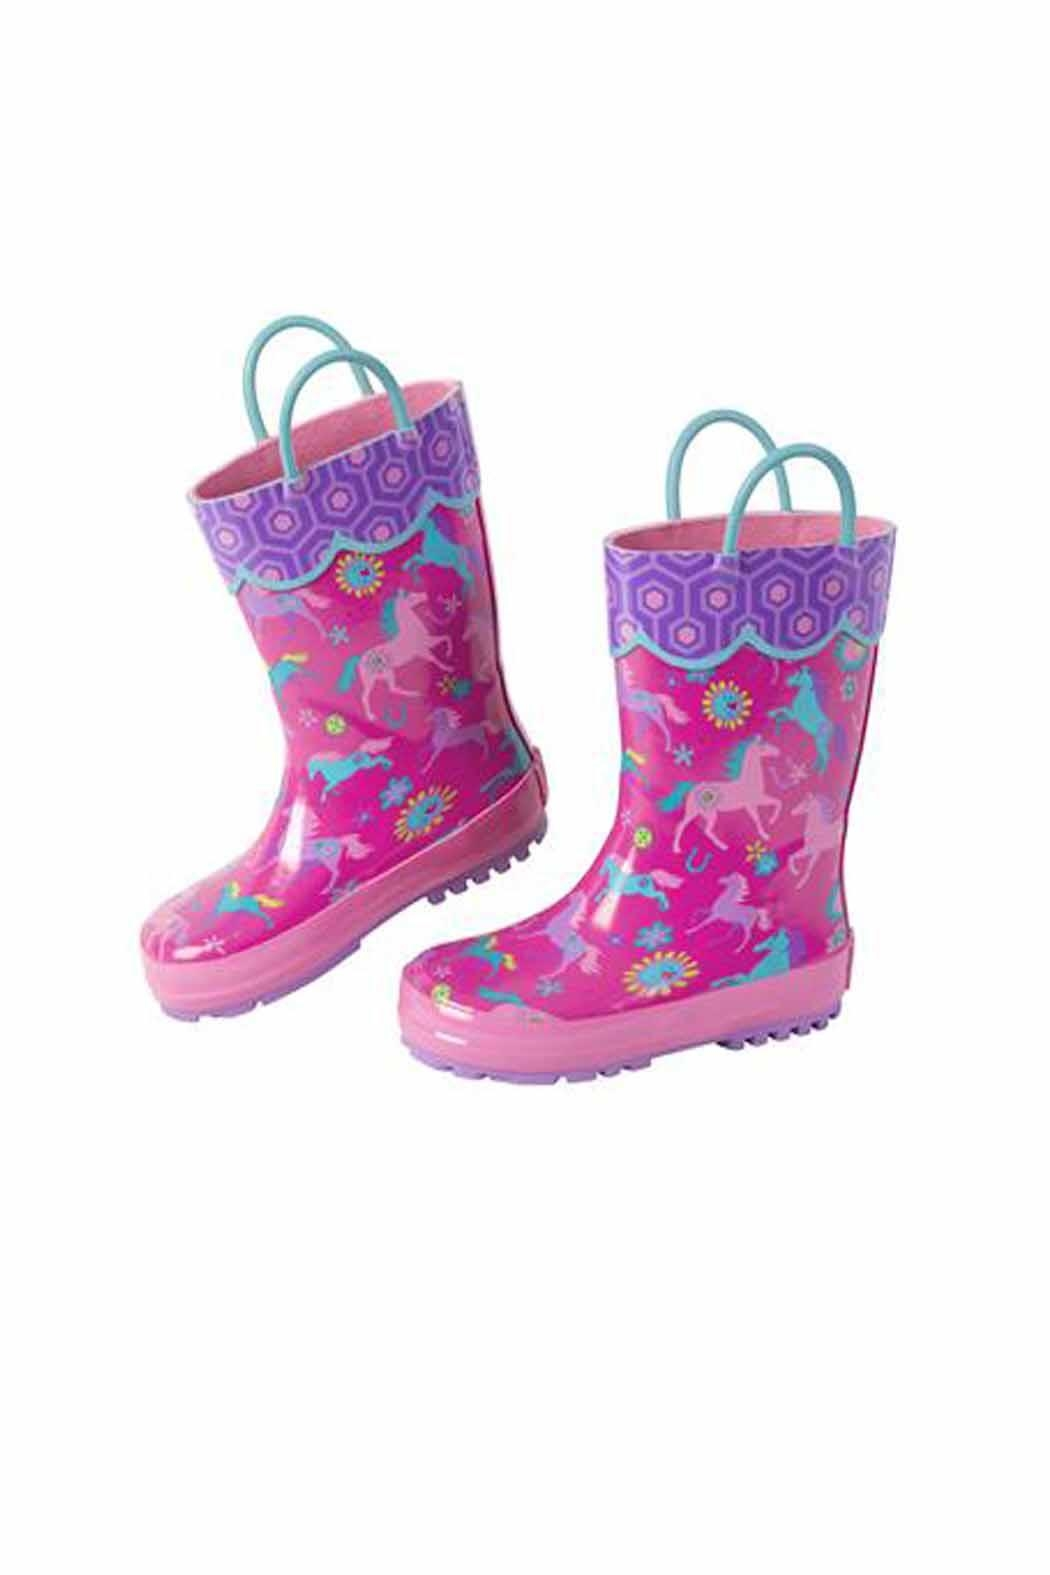 Patterned Rain Boots Magnificent Decorating Ideas